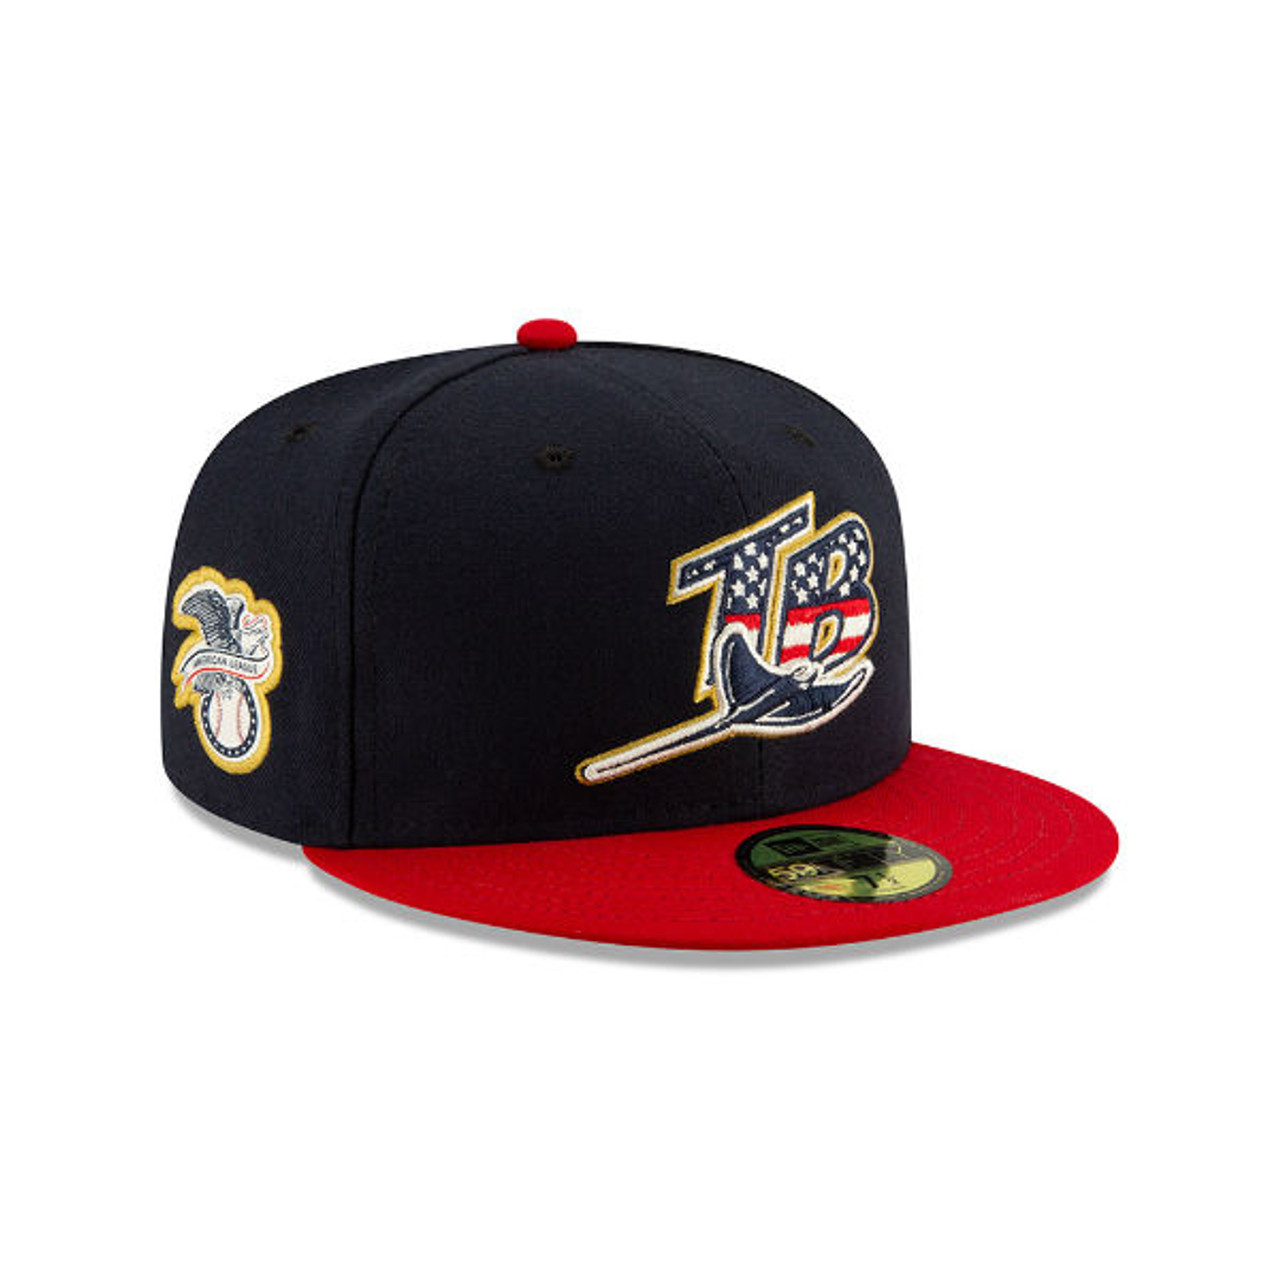 size 40 64a7d 37e1d Men s Tampa Bay Rays New Era 2019 Stars   Stripes 4th of July On-Field  Fitted 59Fifty Hat - Tampa Bay Sports